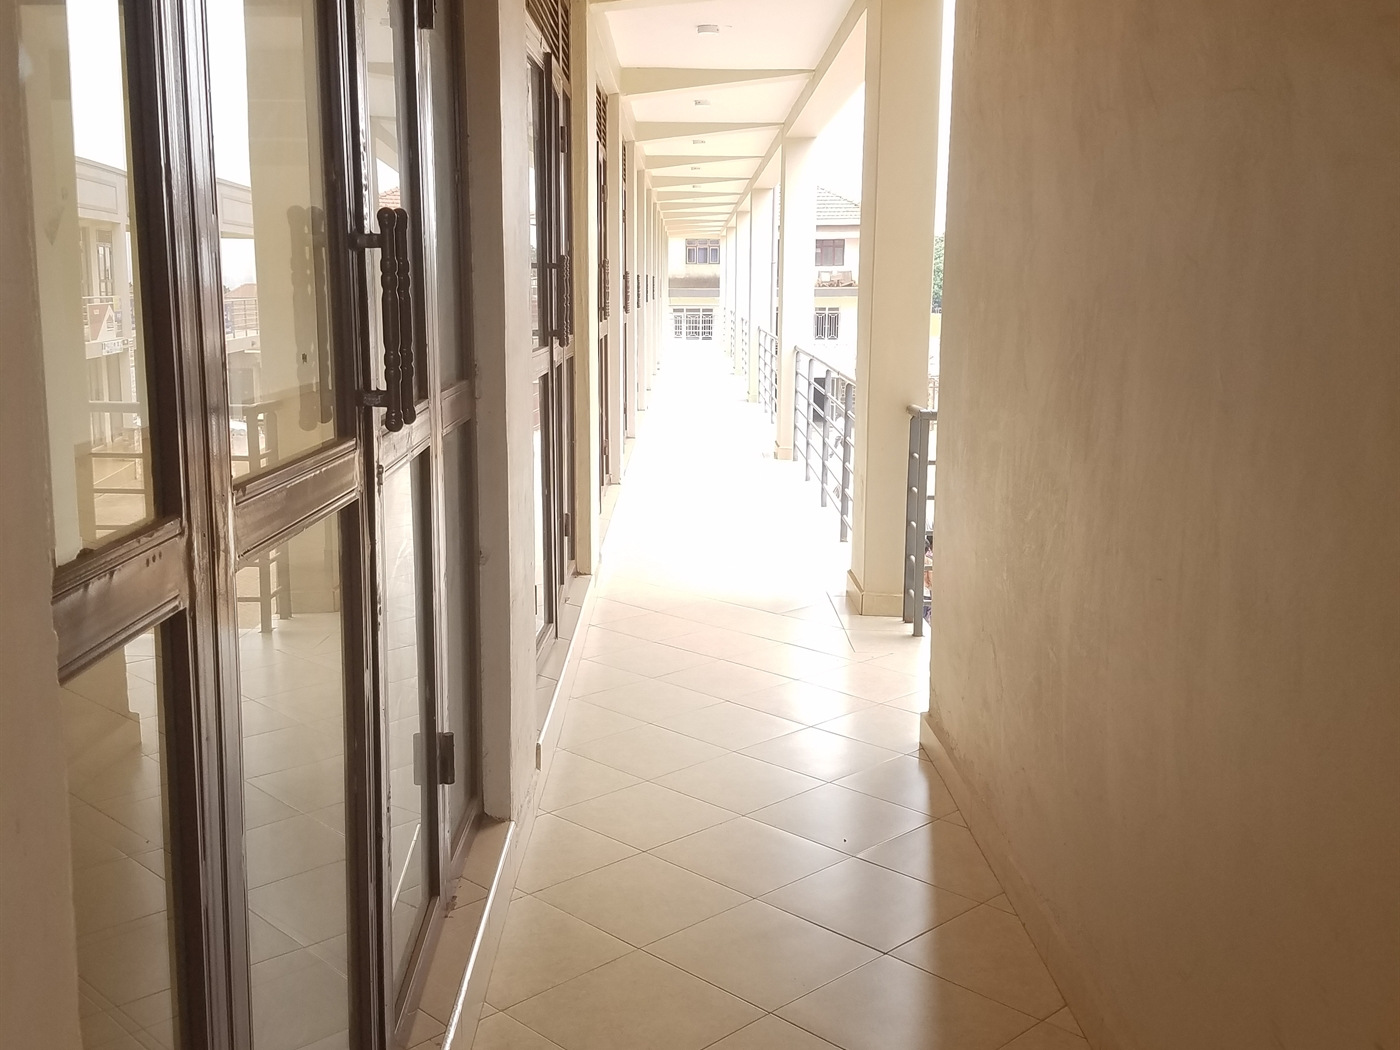 Commercial block for rent in Ntinda Kampala